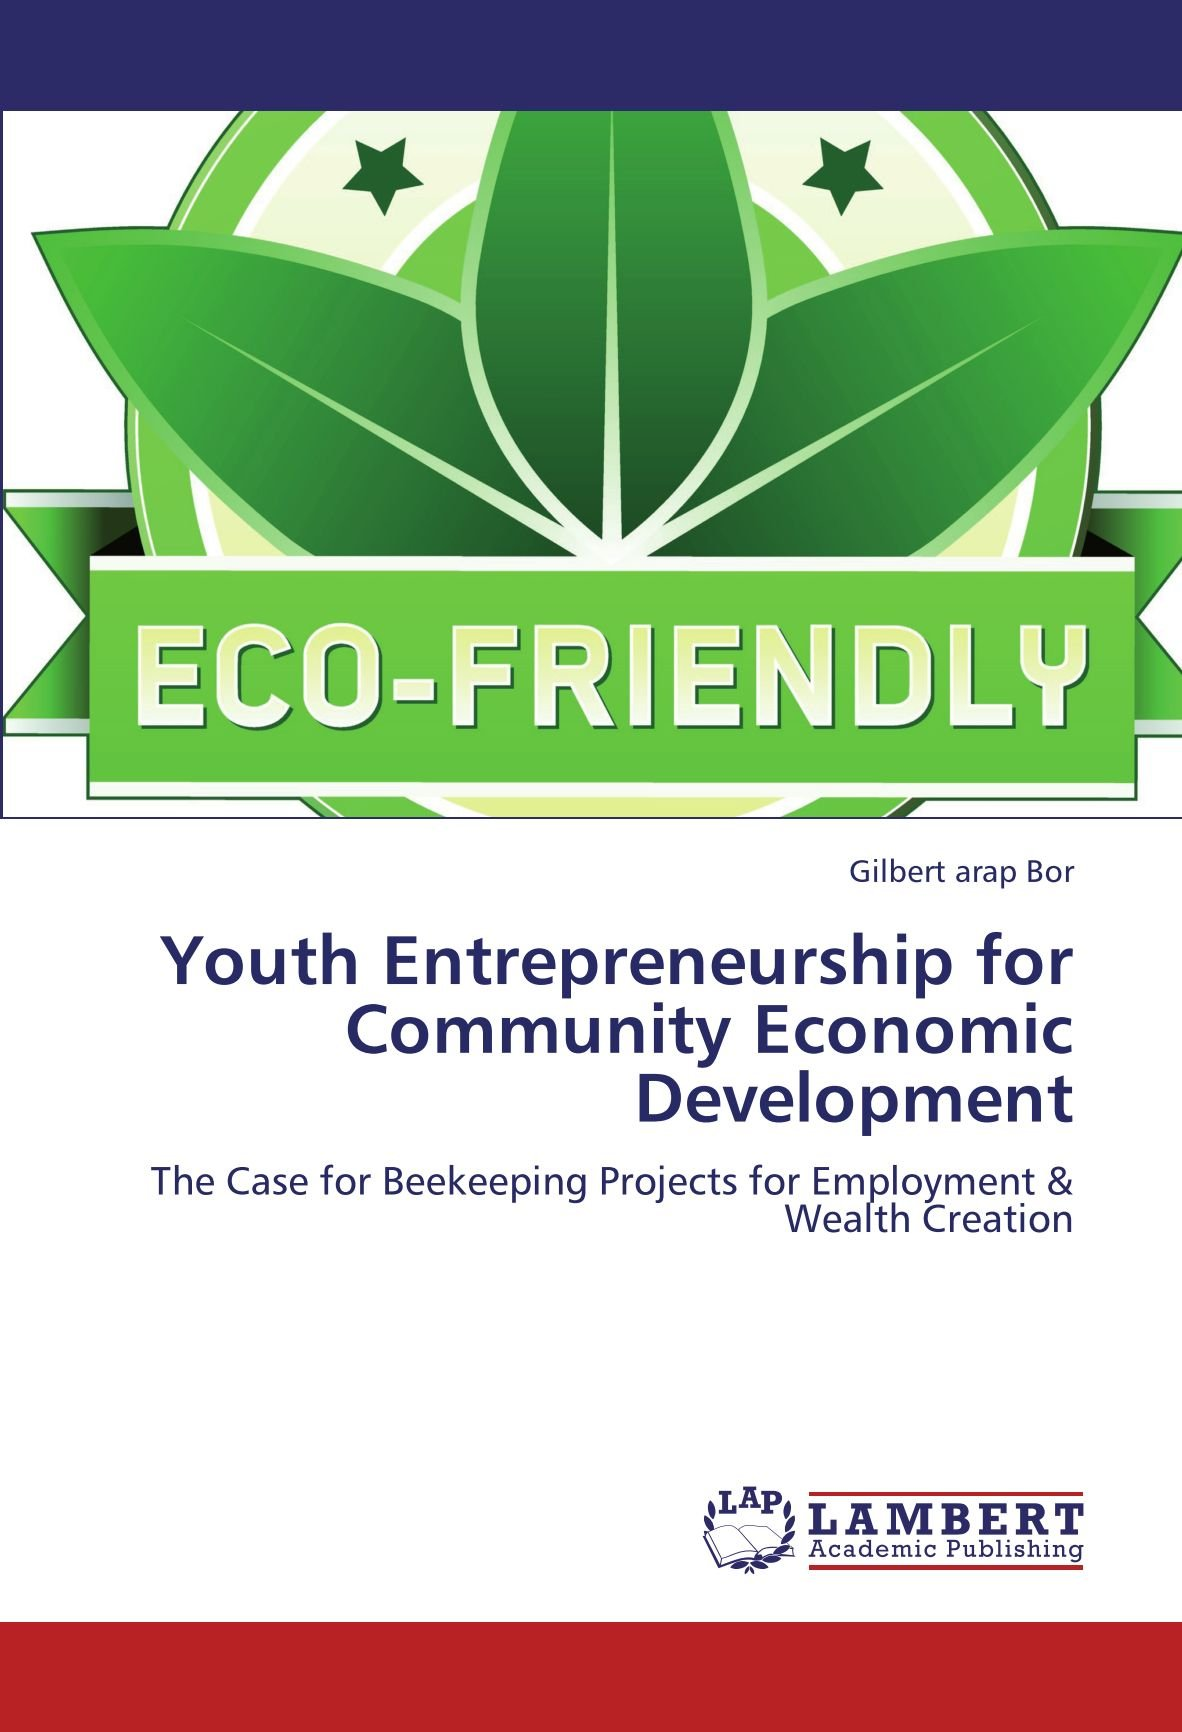 Youth Entrepreneurship for Community Economic Development: The Case for Beekeeping Projects for Employment & Wealth Creation